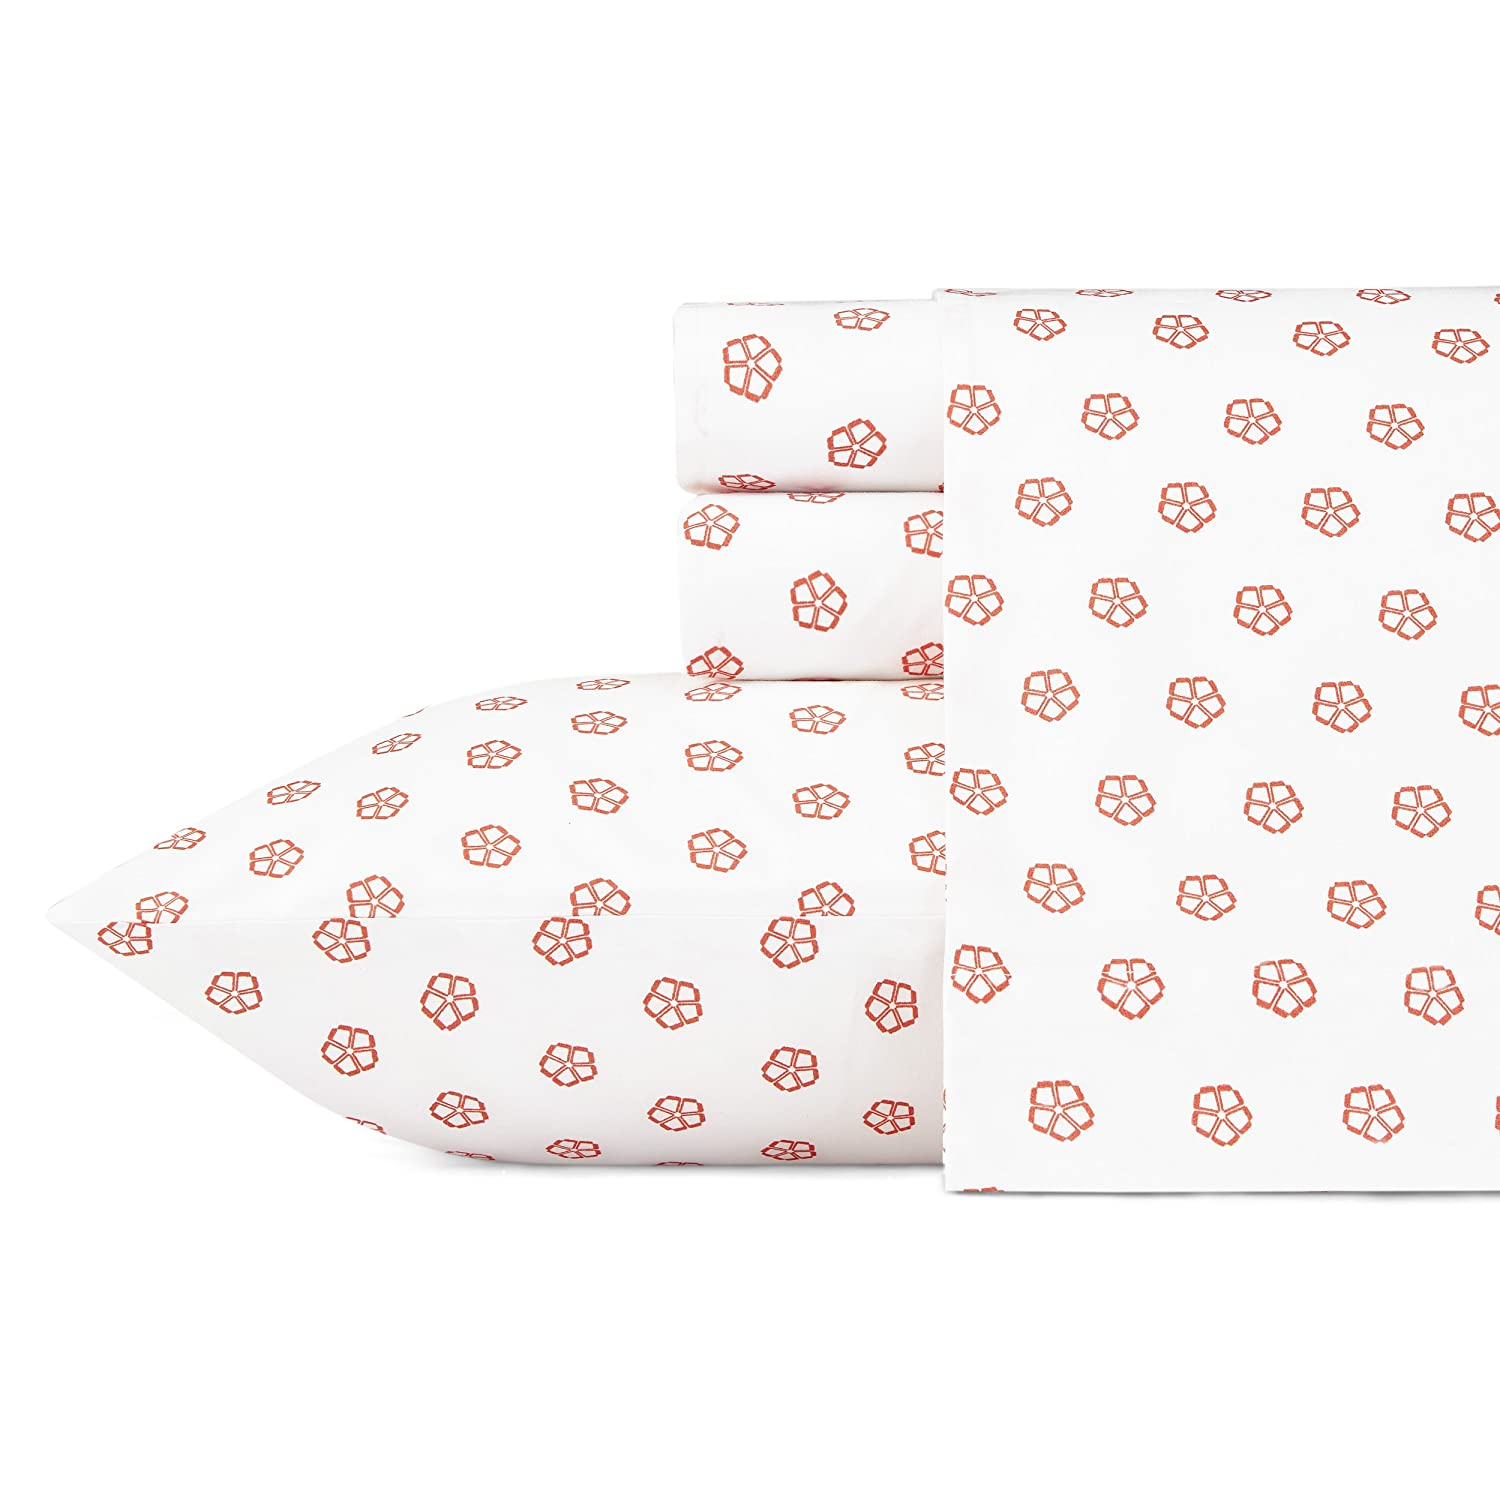 Trina Turk USHSA01050374 Fiorella Sheet Set, Queen, Orange